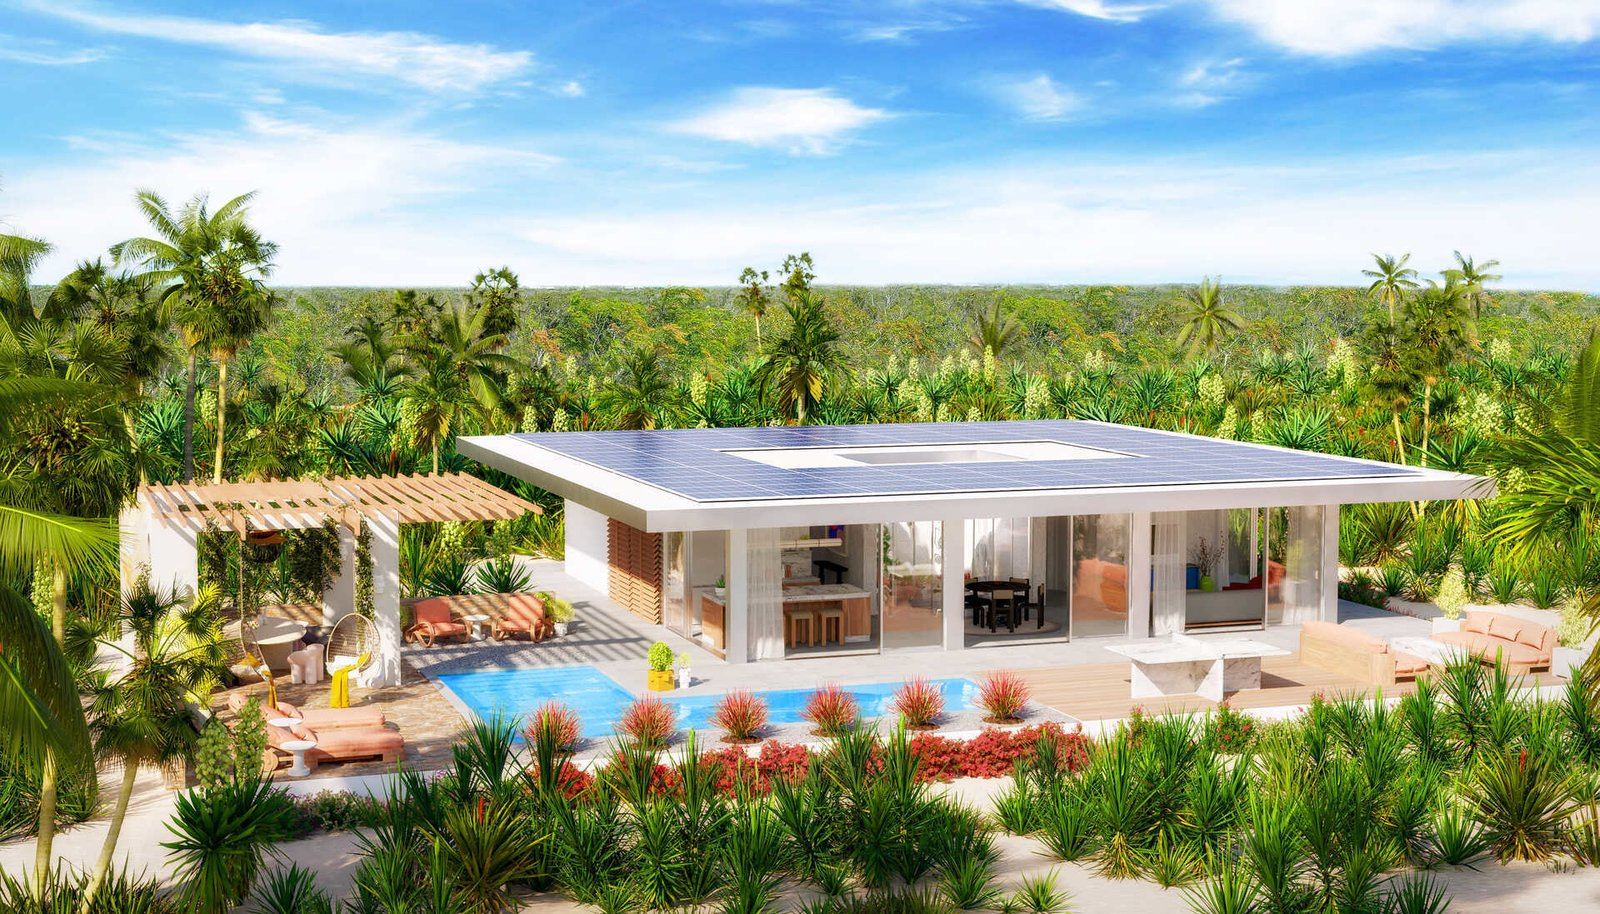 Photo  of Sustainable Living Steps From The Beach at Karaya Blue in Turks & Caicos modern home